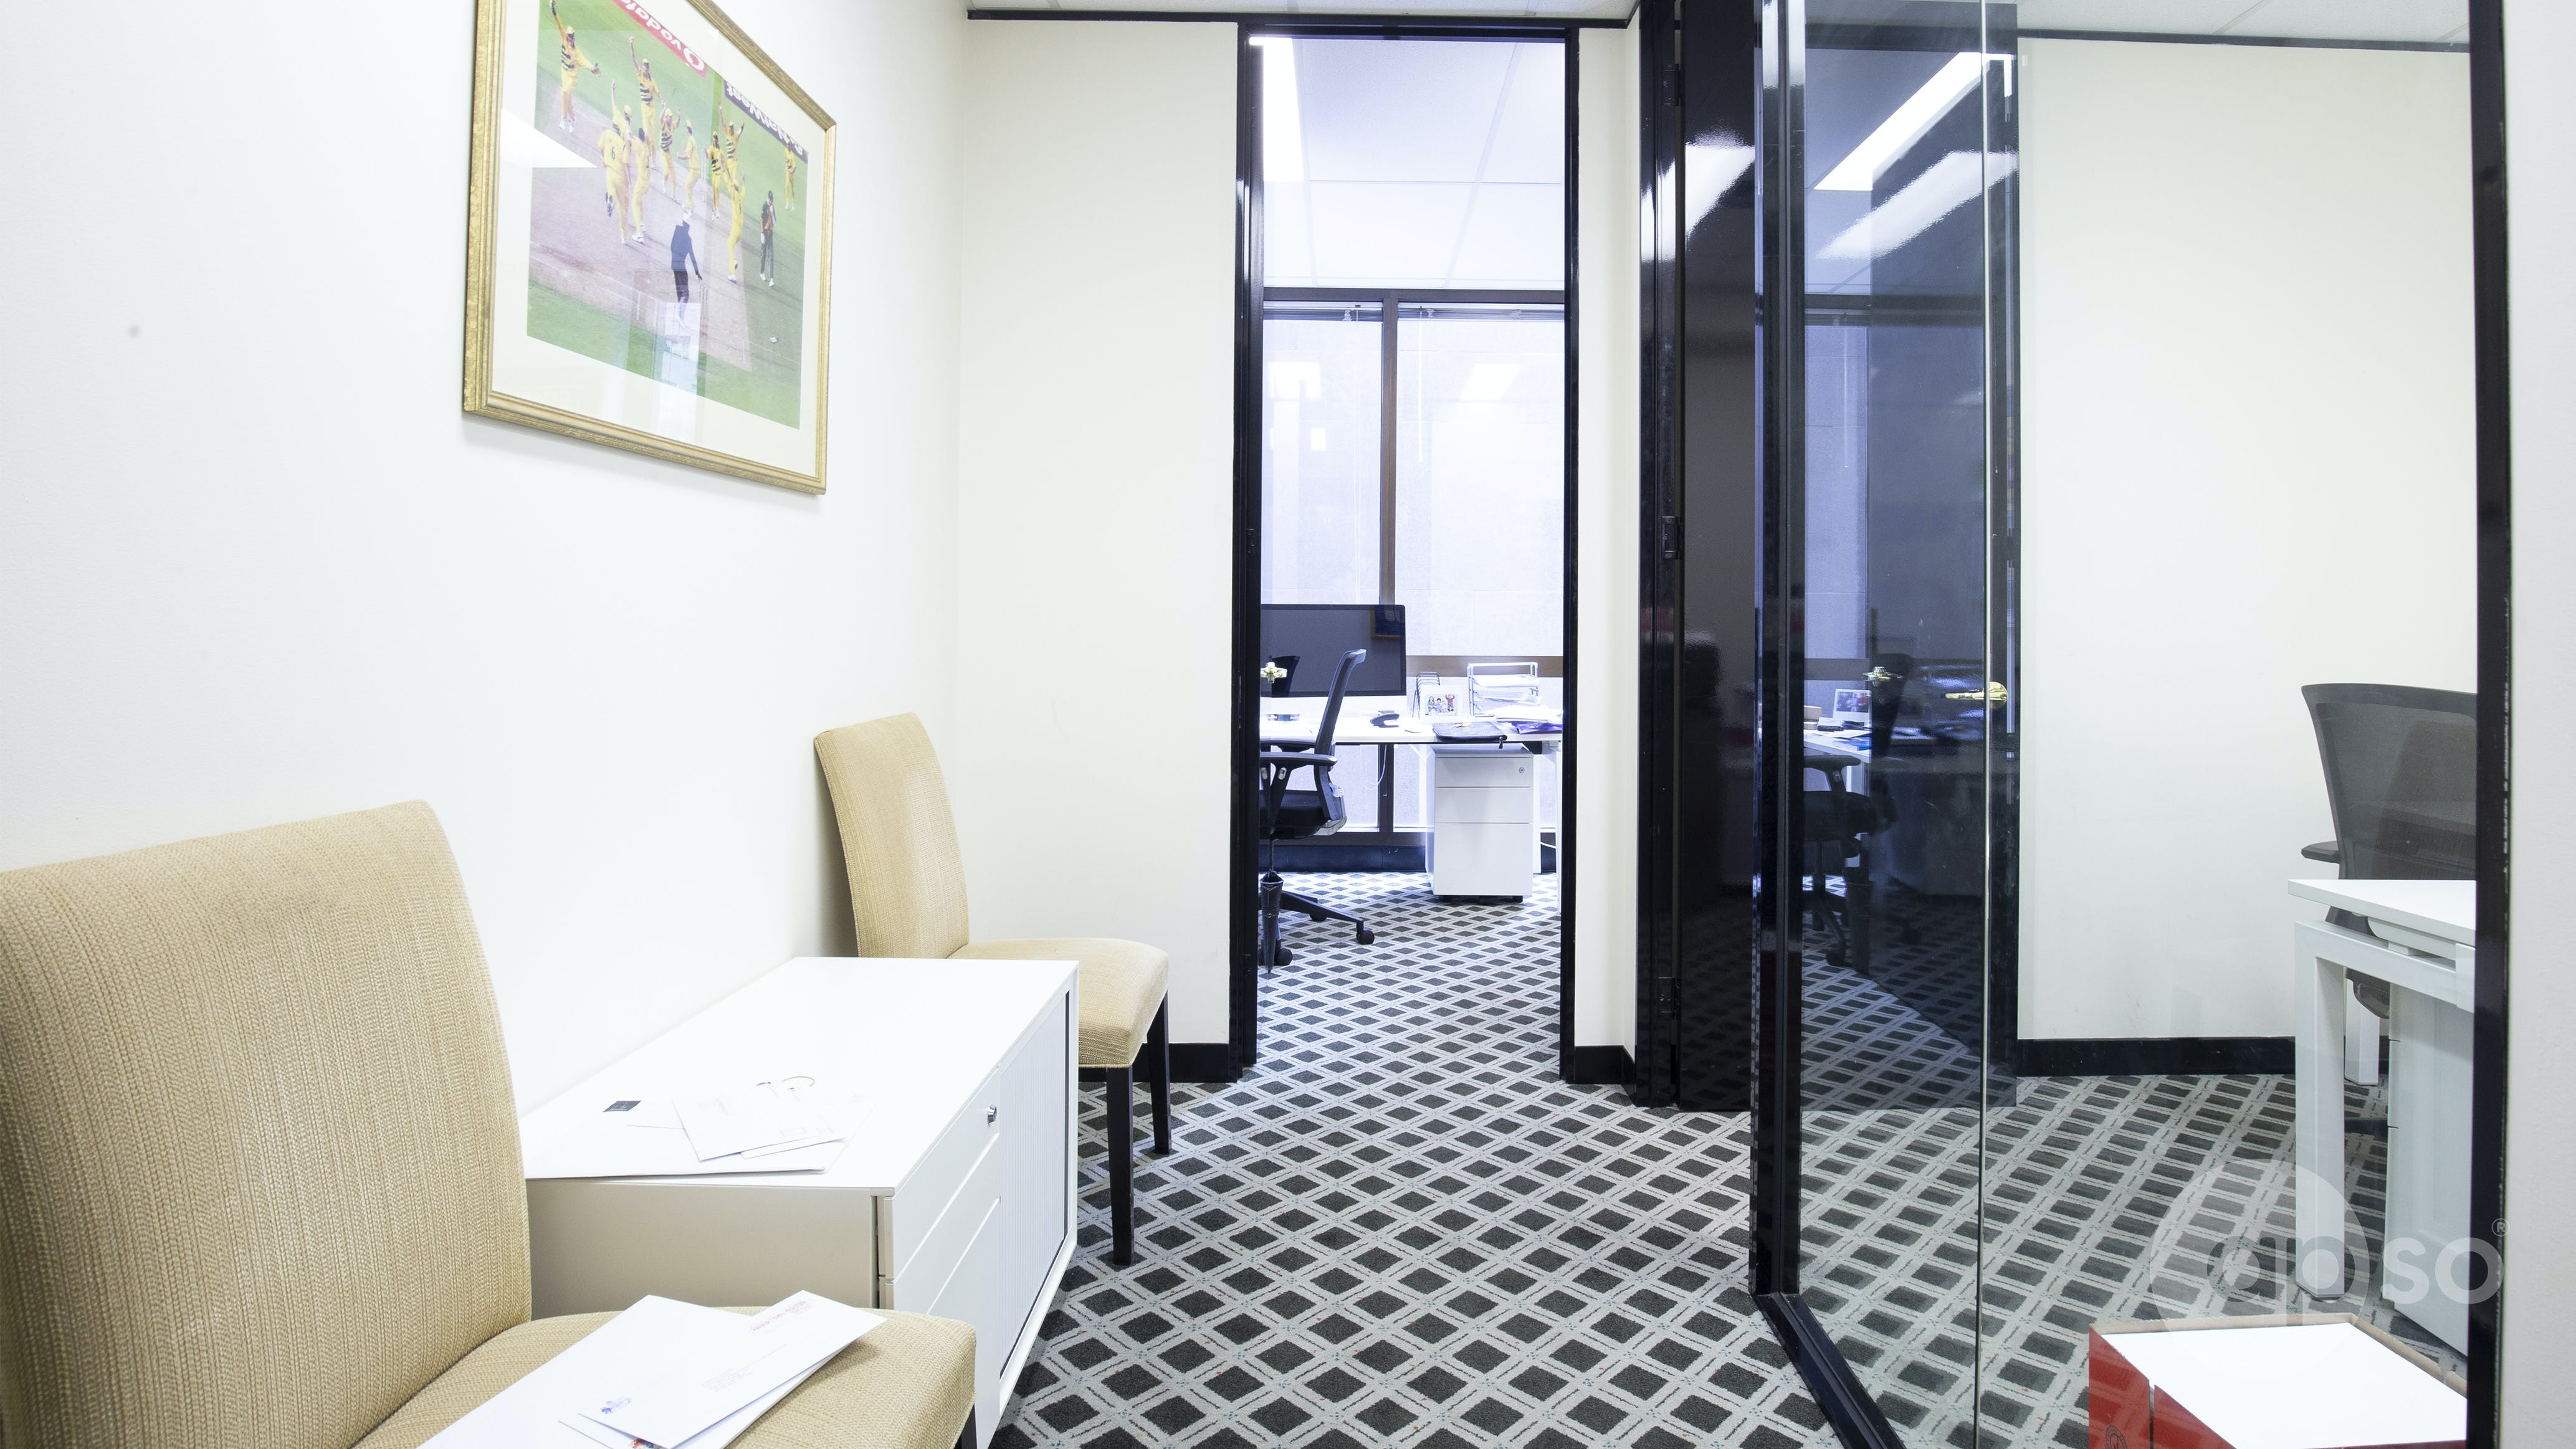 Suite 607, private office at Exchange Tower, image 2